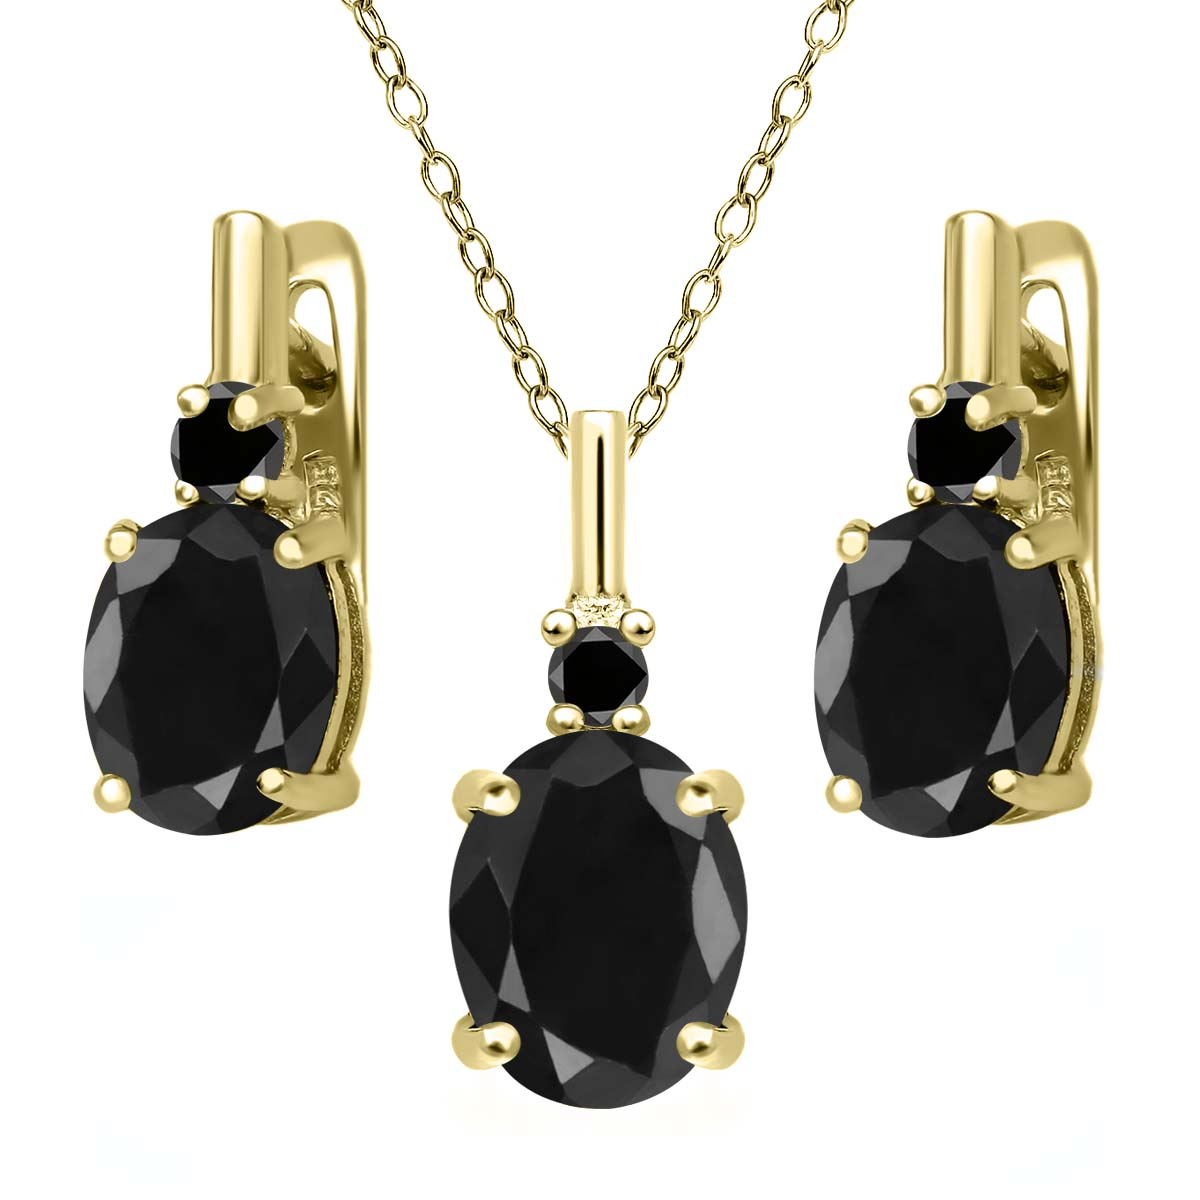 7.69 Ct Black Sapphire Black Diamond 18K Yellow Gold Plated Silver Pendant Earrings Set by